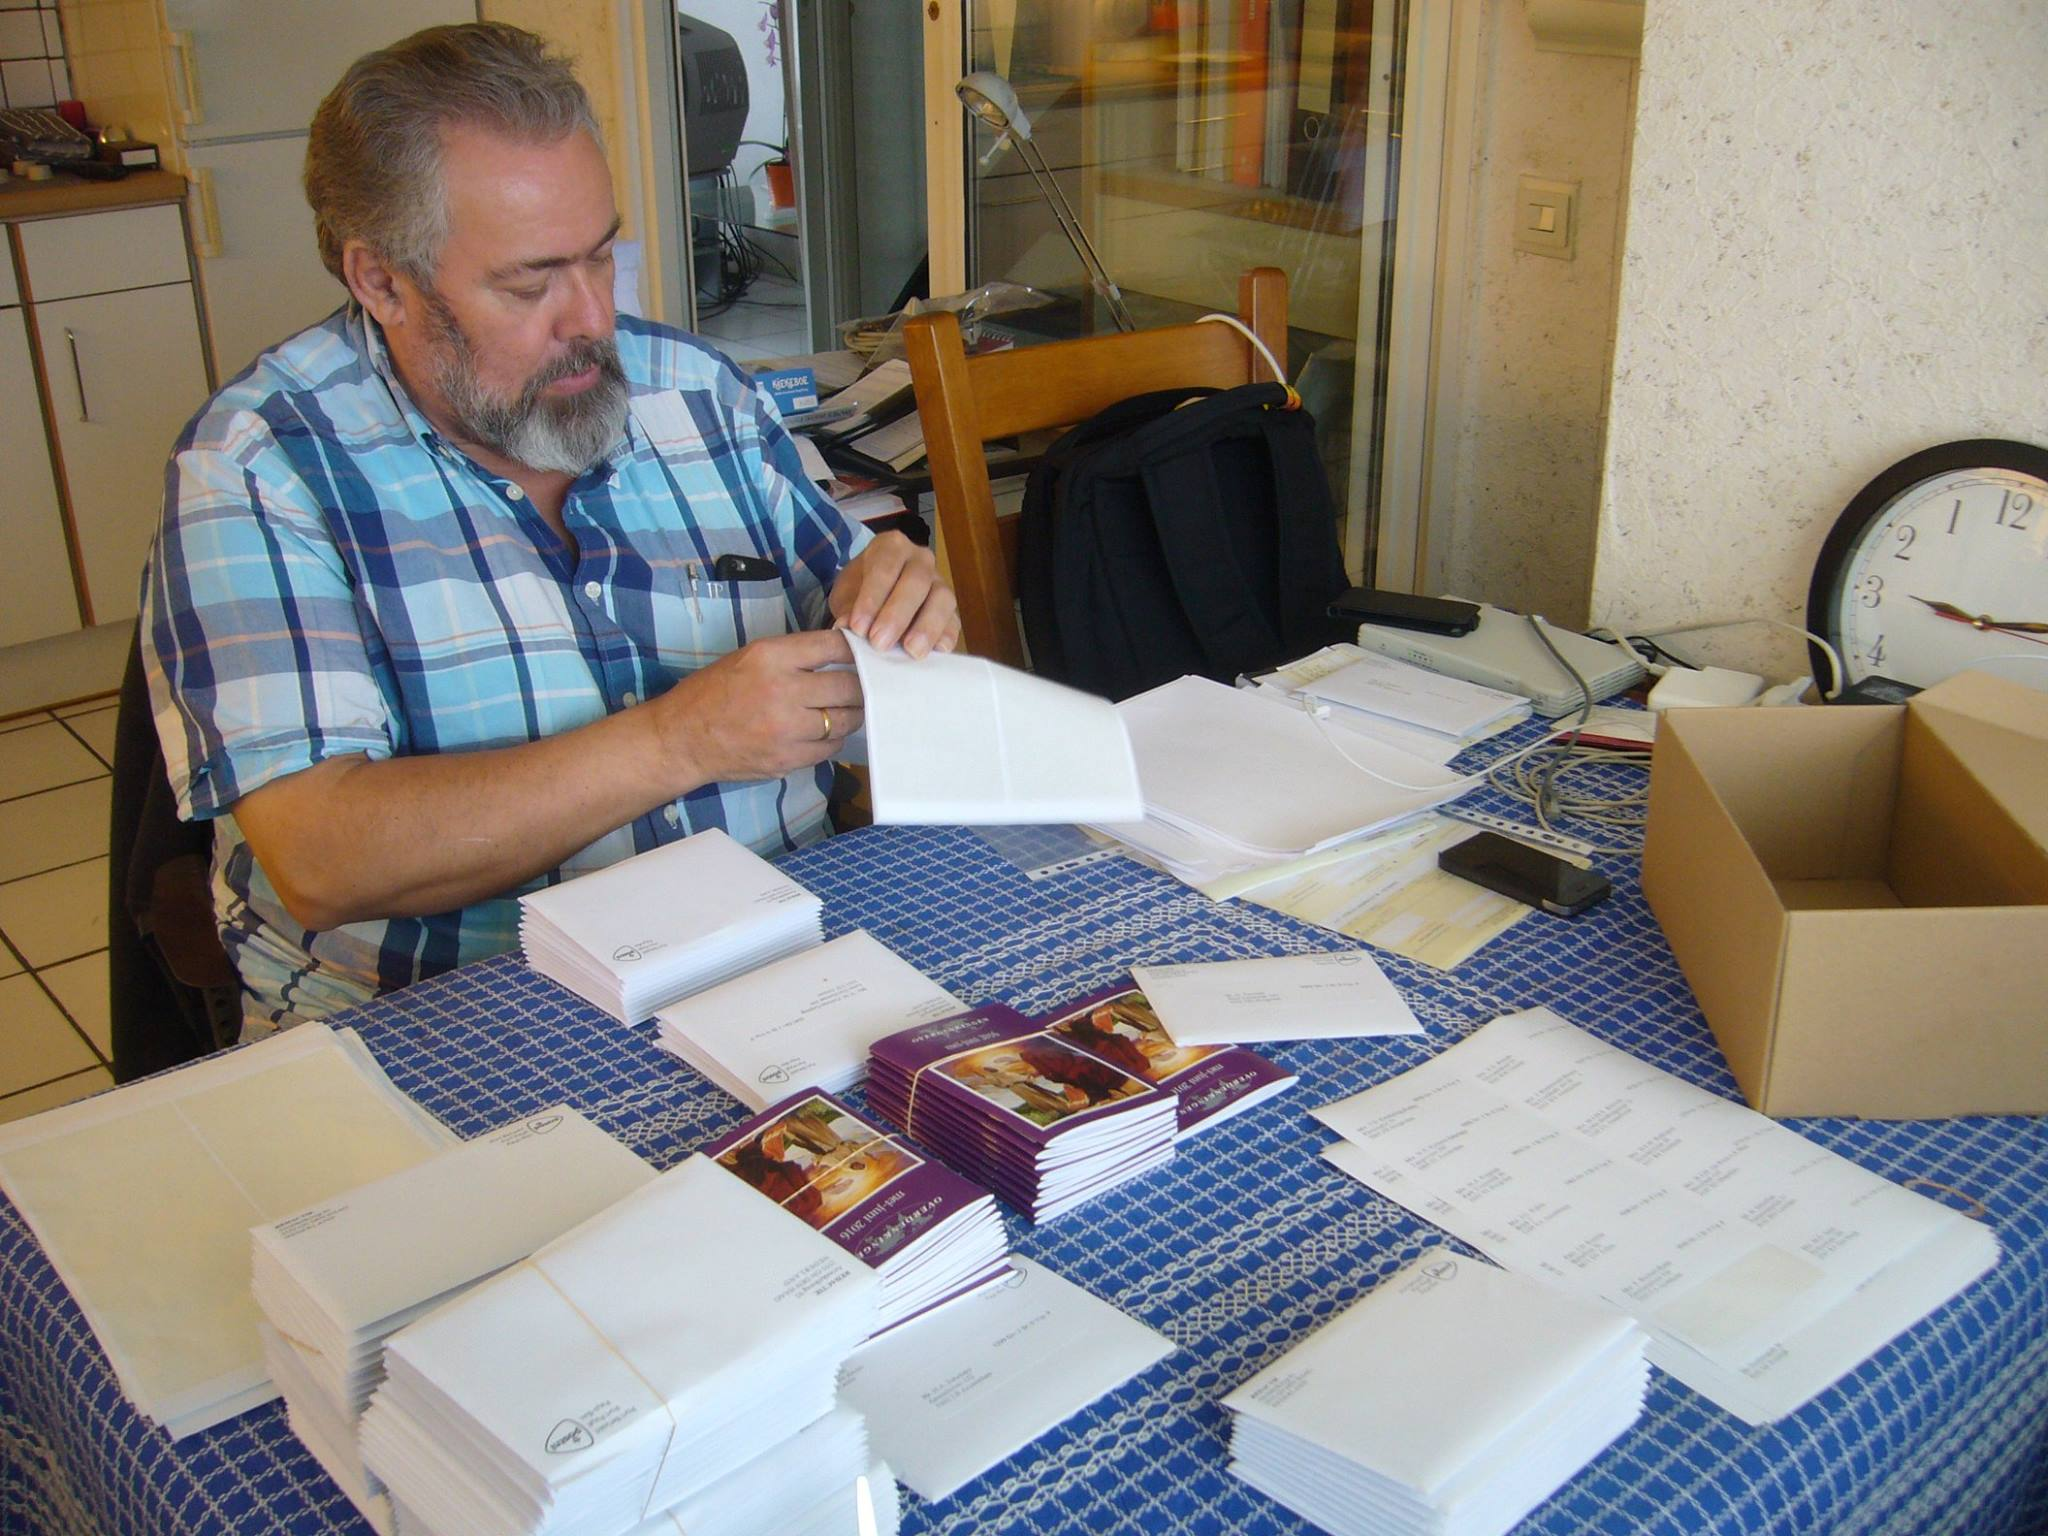 Jan Willem Preparing To Mail Copies Of Dutch Edition To Subscribers